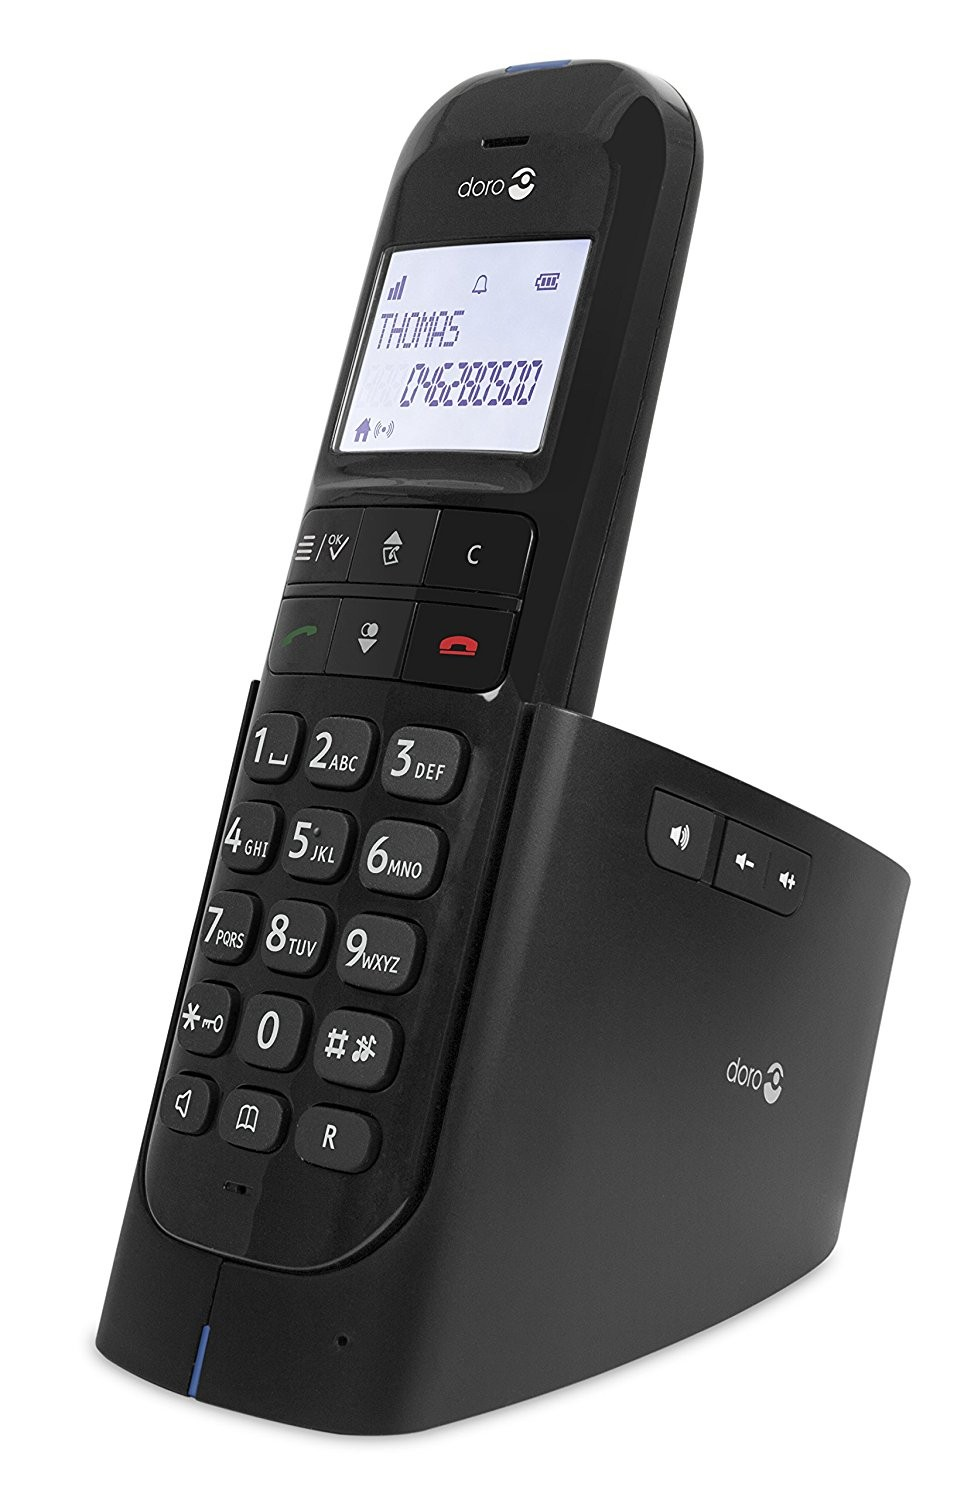 Doro Magna 2005 DECT Cordless Phone With Answering Machine